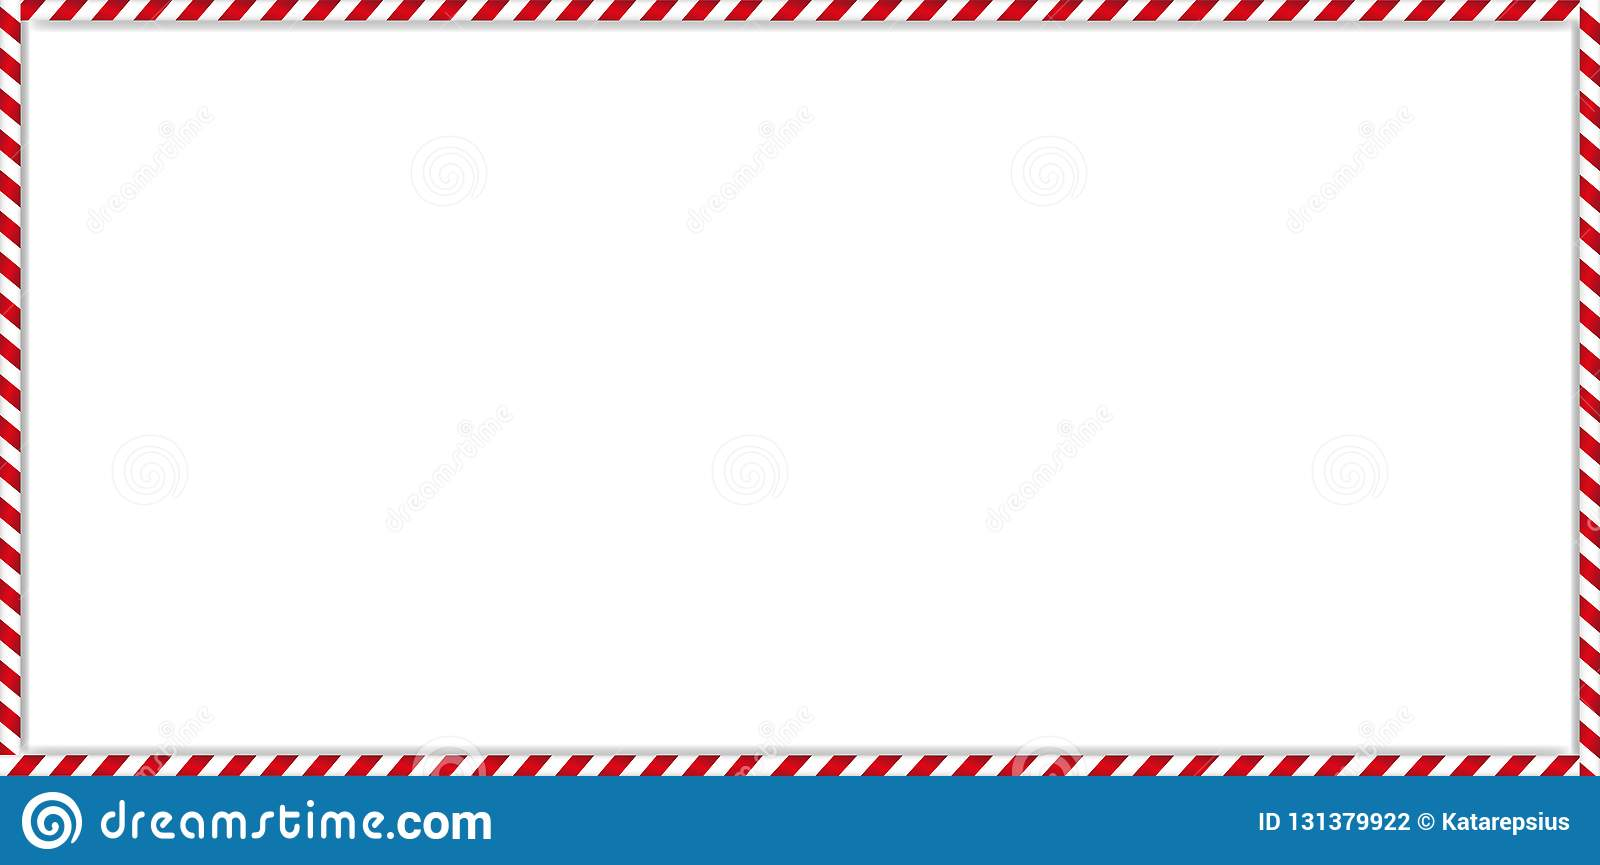 Rectangle Candy Cane Frame With Red And White Striped